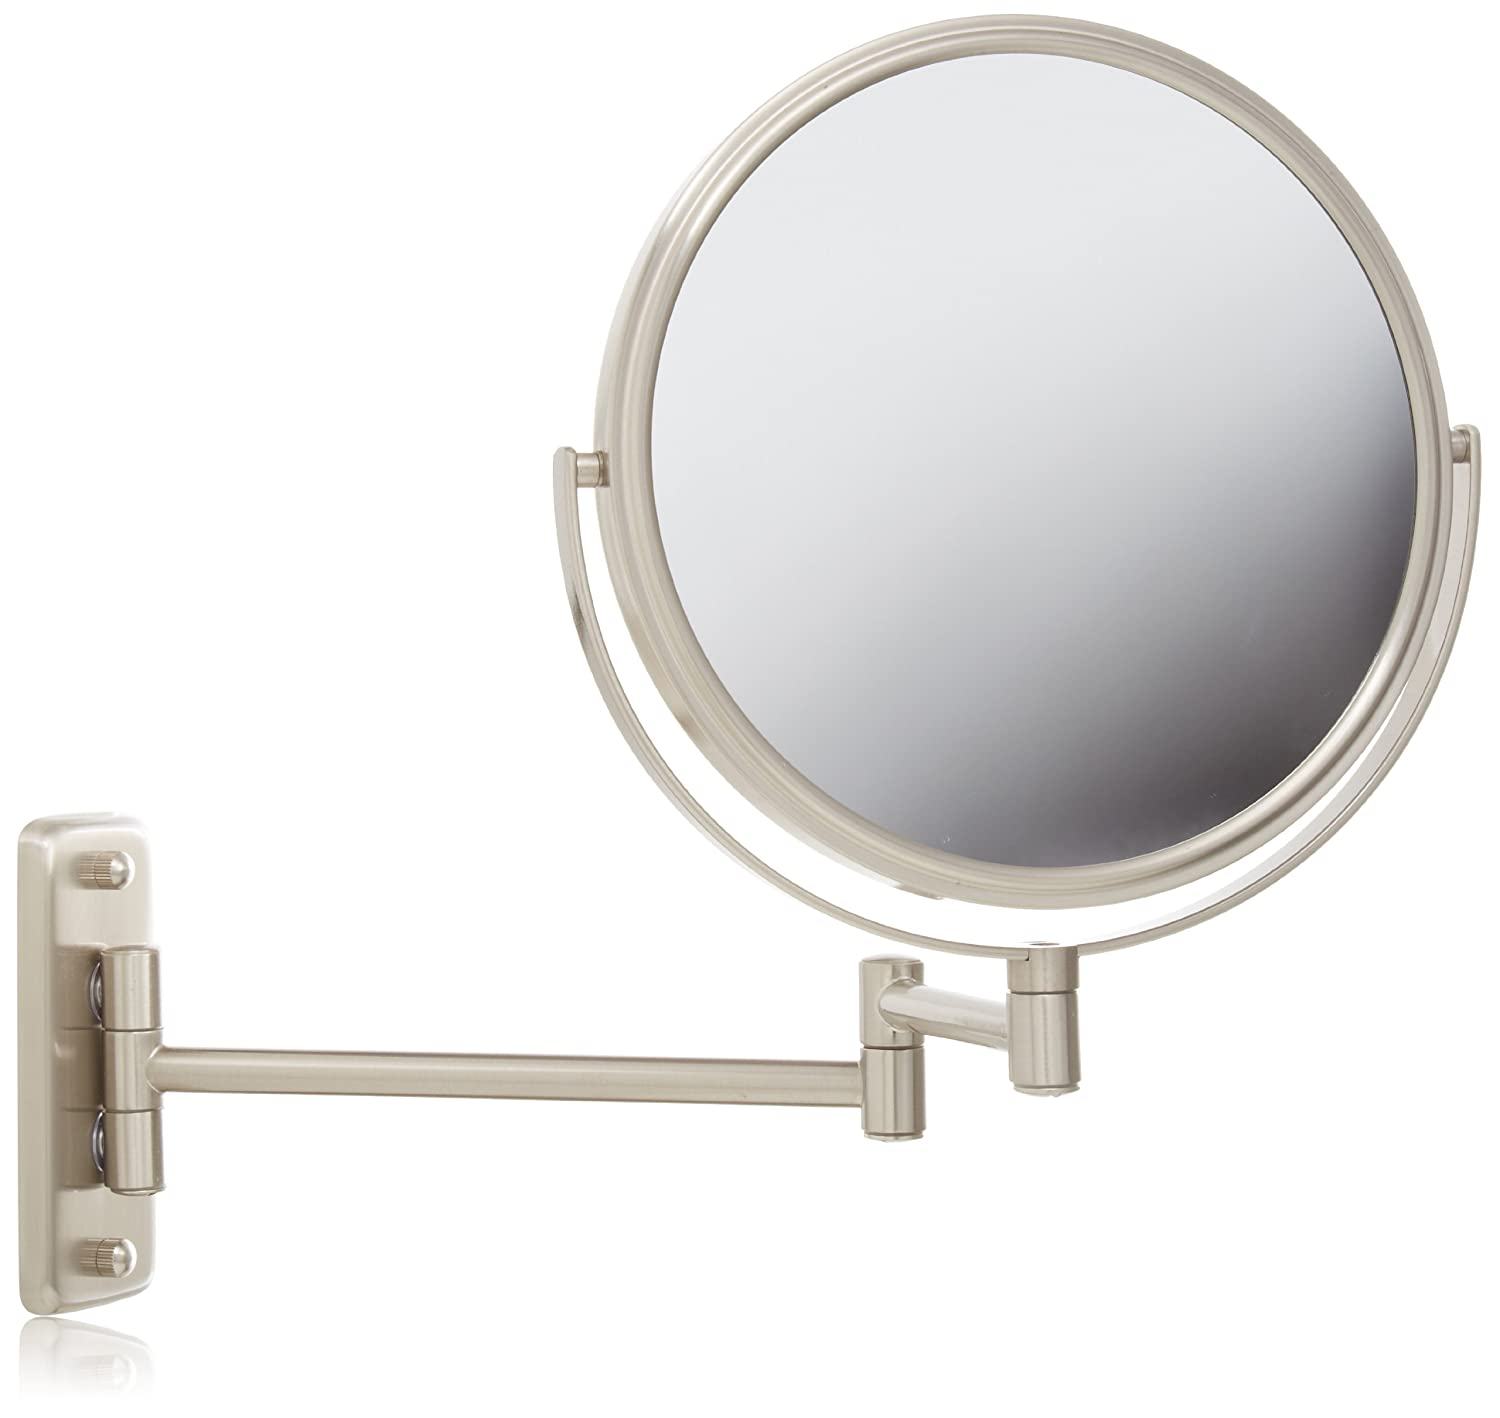 Amazon jerdon jp7808n 8 inch two sided swivel wall mount amazon jerdon jp7808n 8 inch two sided swivel wall mount mirror with 8x magnification 135 inch extension nickel finish personal makeup mirrors amipublicfo Choice Image